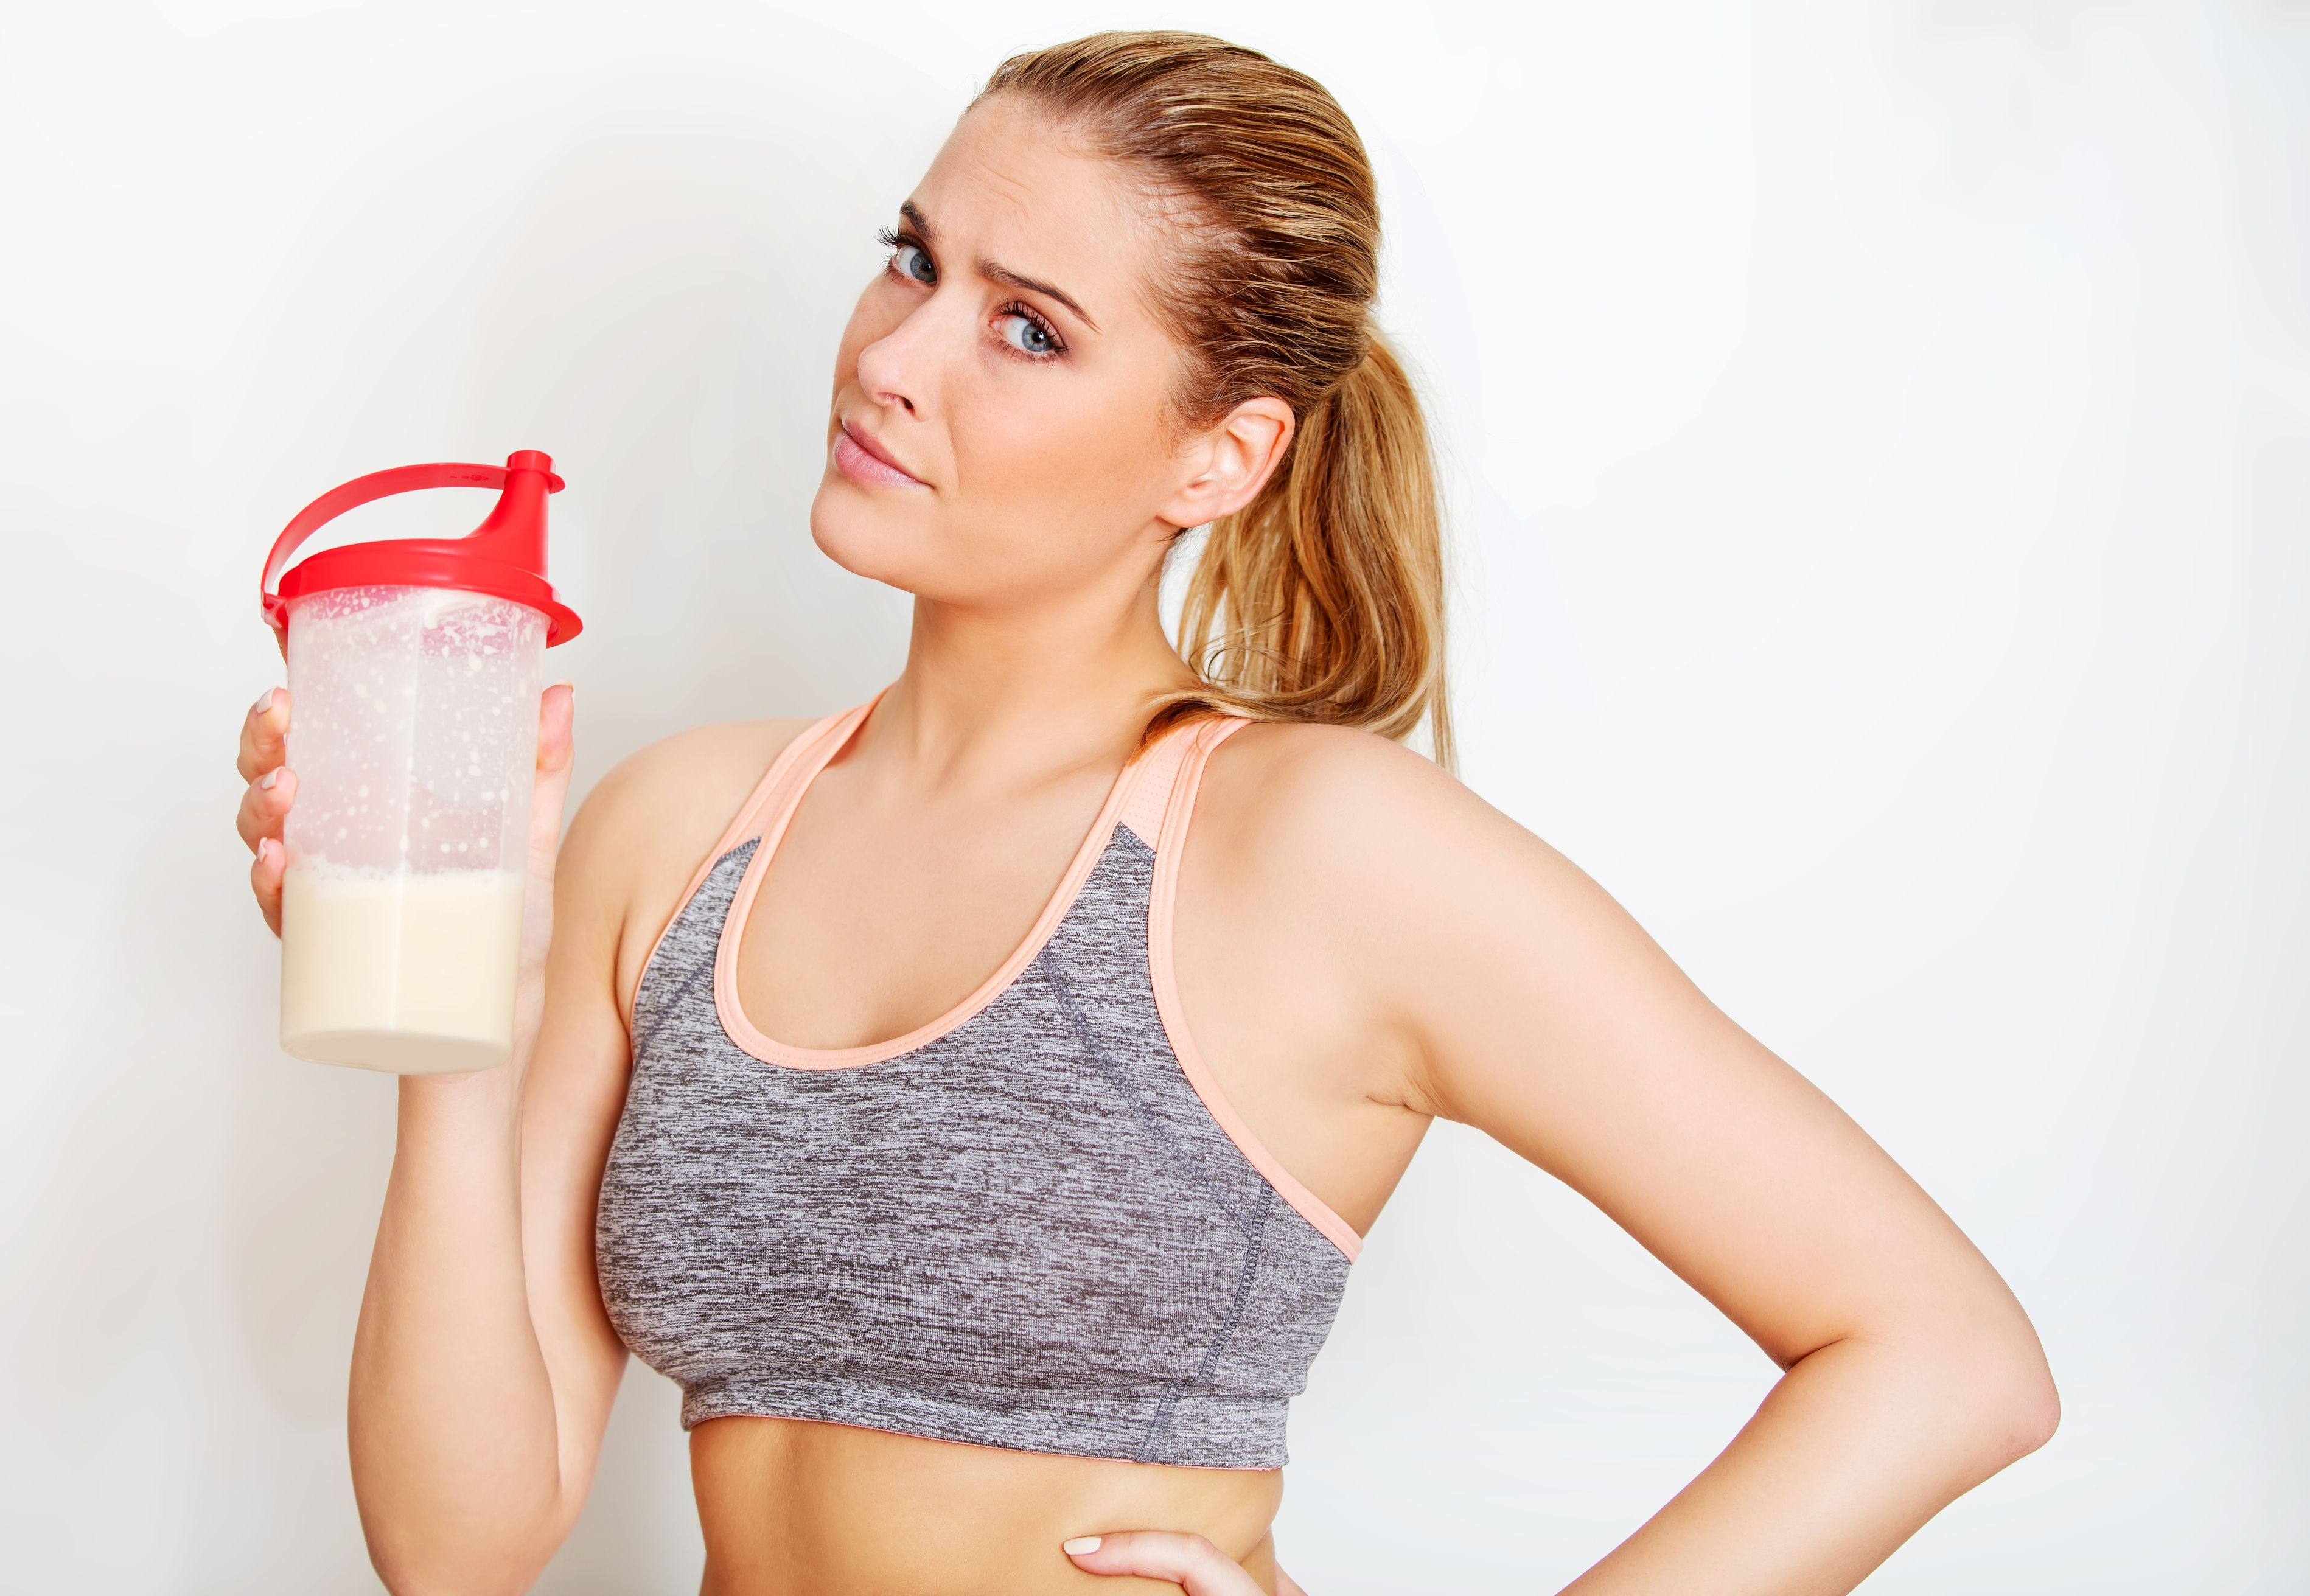 Is the Isagenix Diet an Effective Way to Lose Weight?